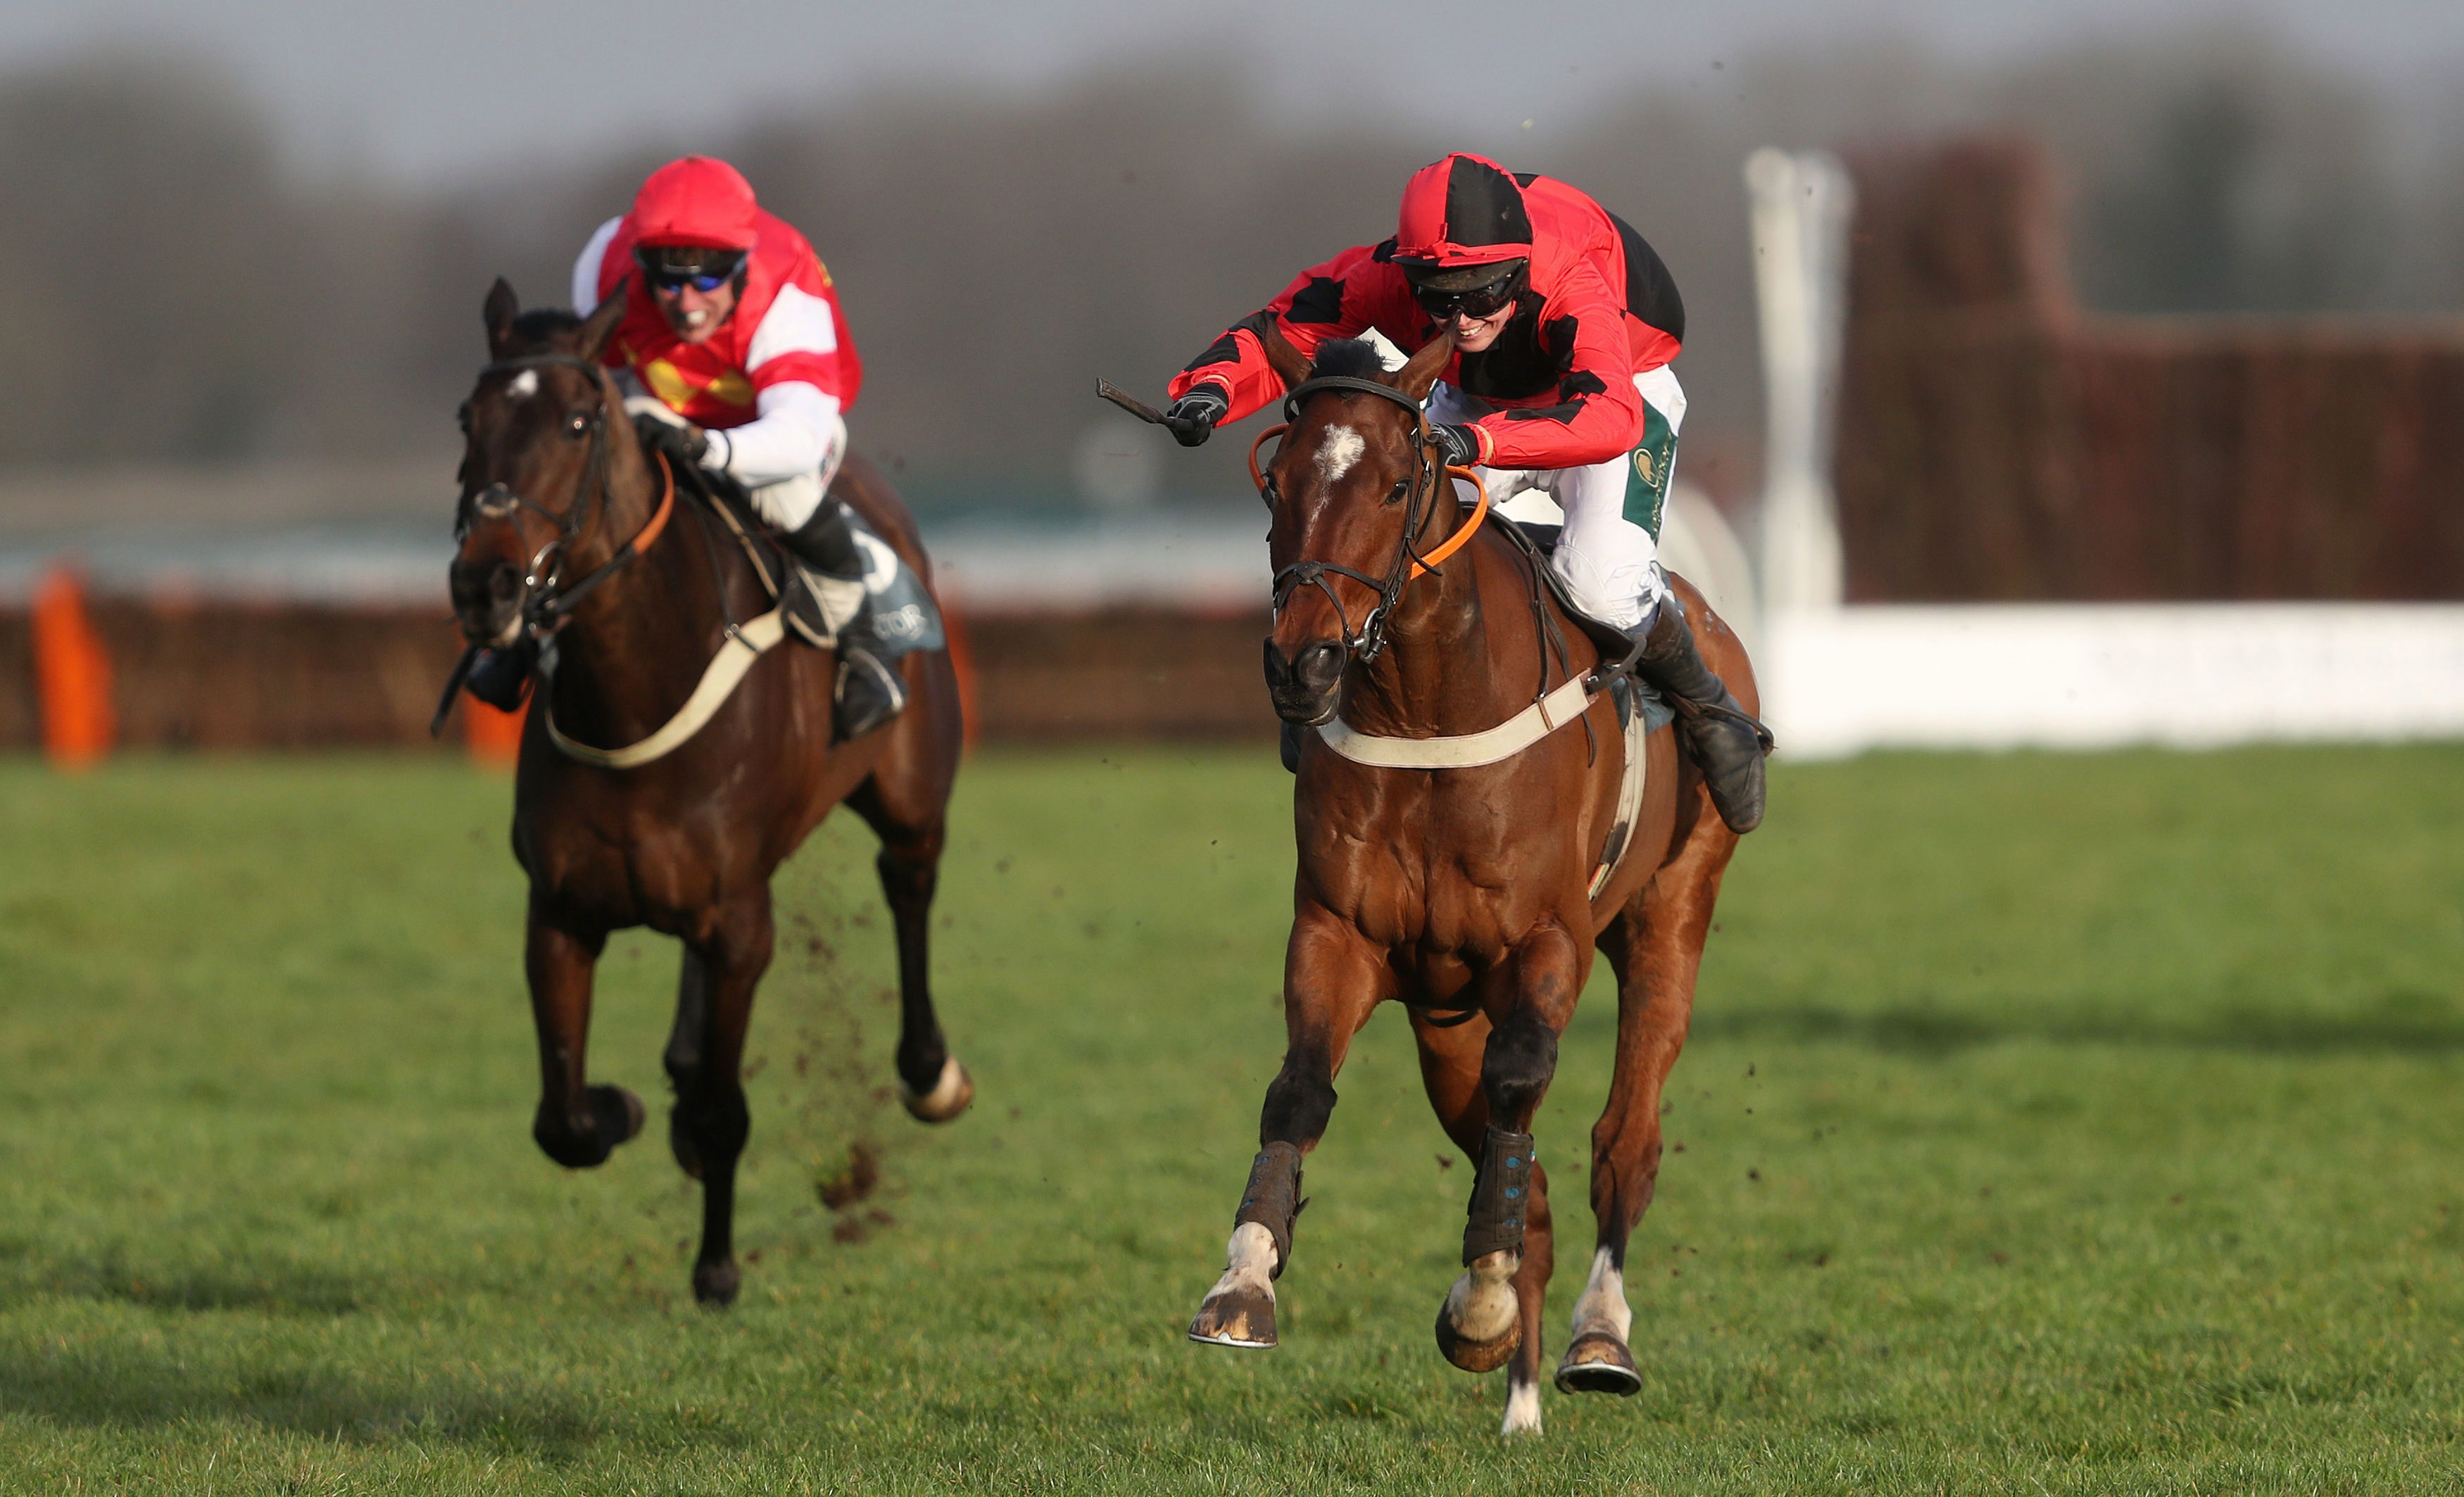 Newbury races tips, racecard, declarations and preview for the meeting live on ITV and Racing TV this Saturday, March 23